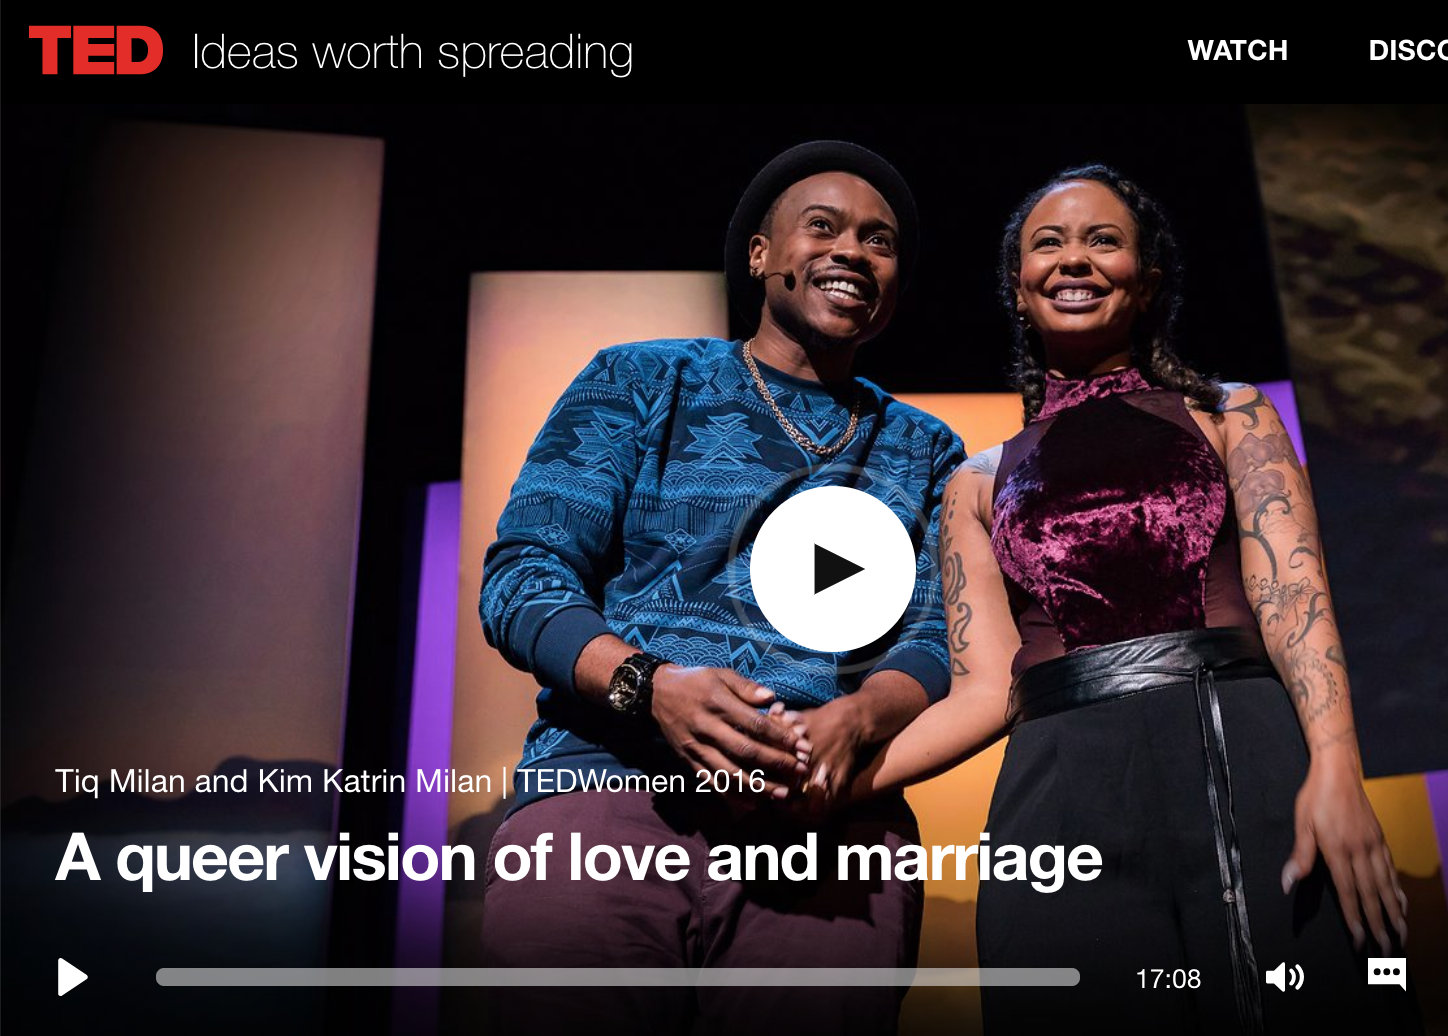 A Queer Vision of Love and Marriage